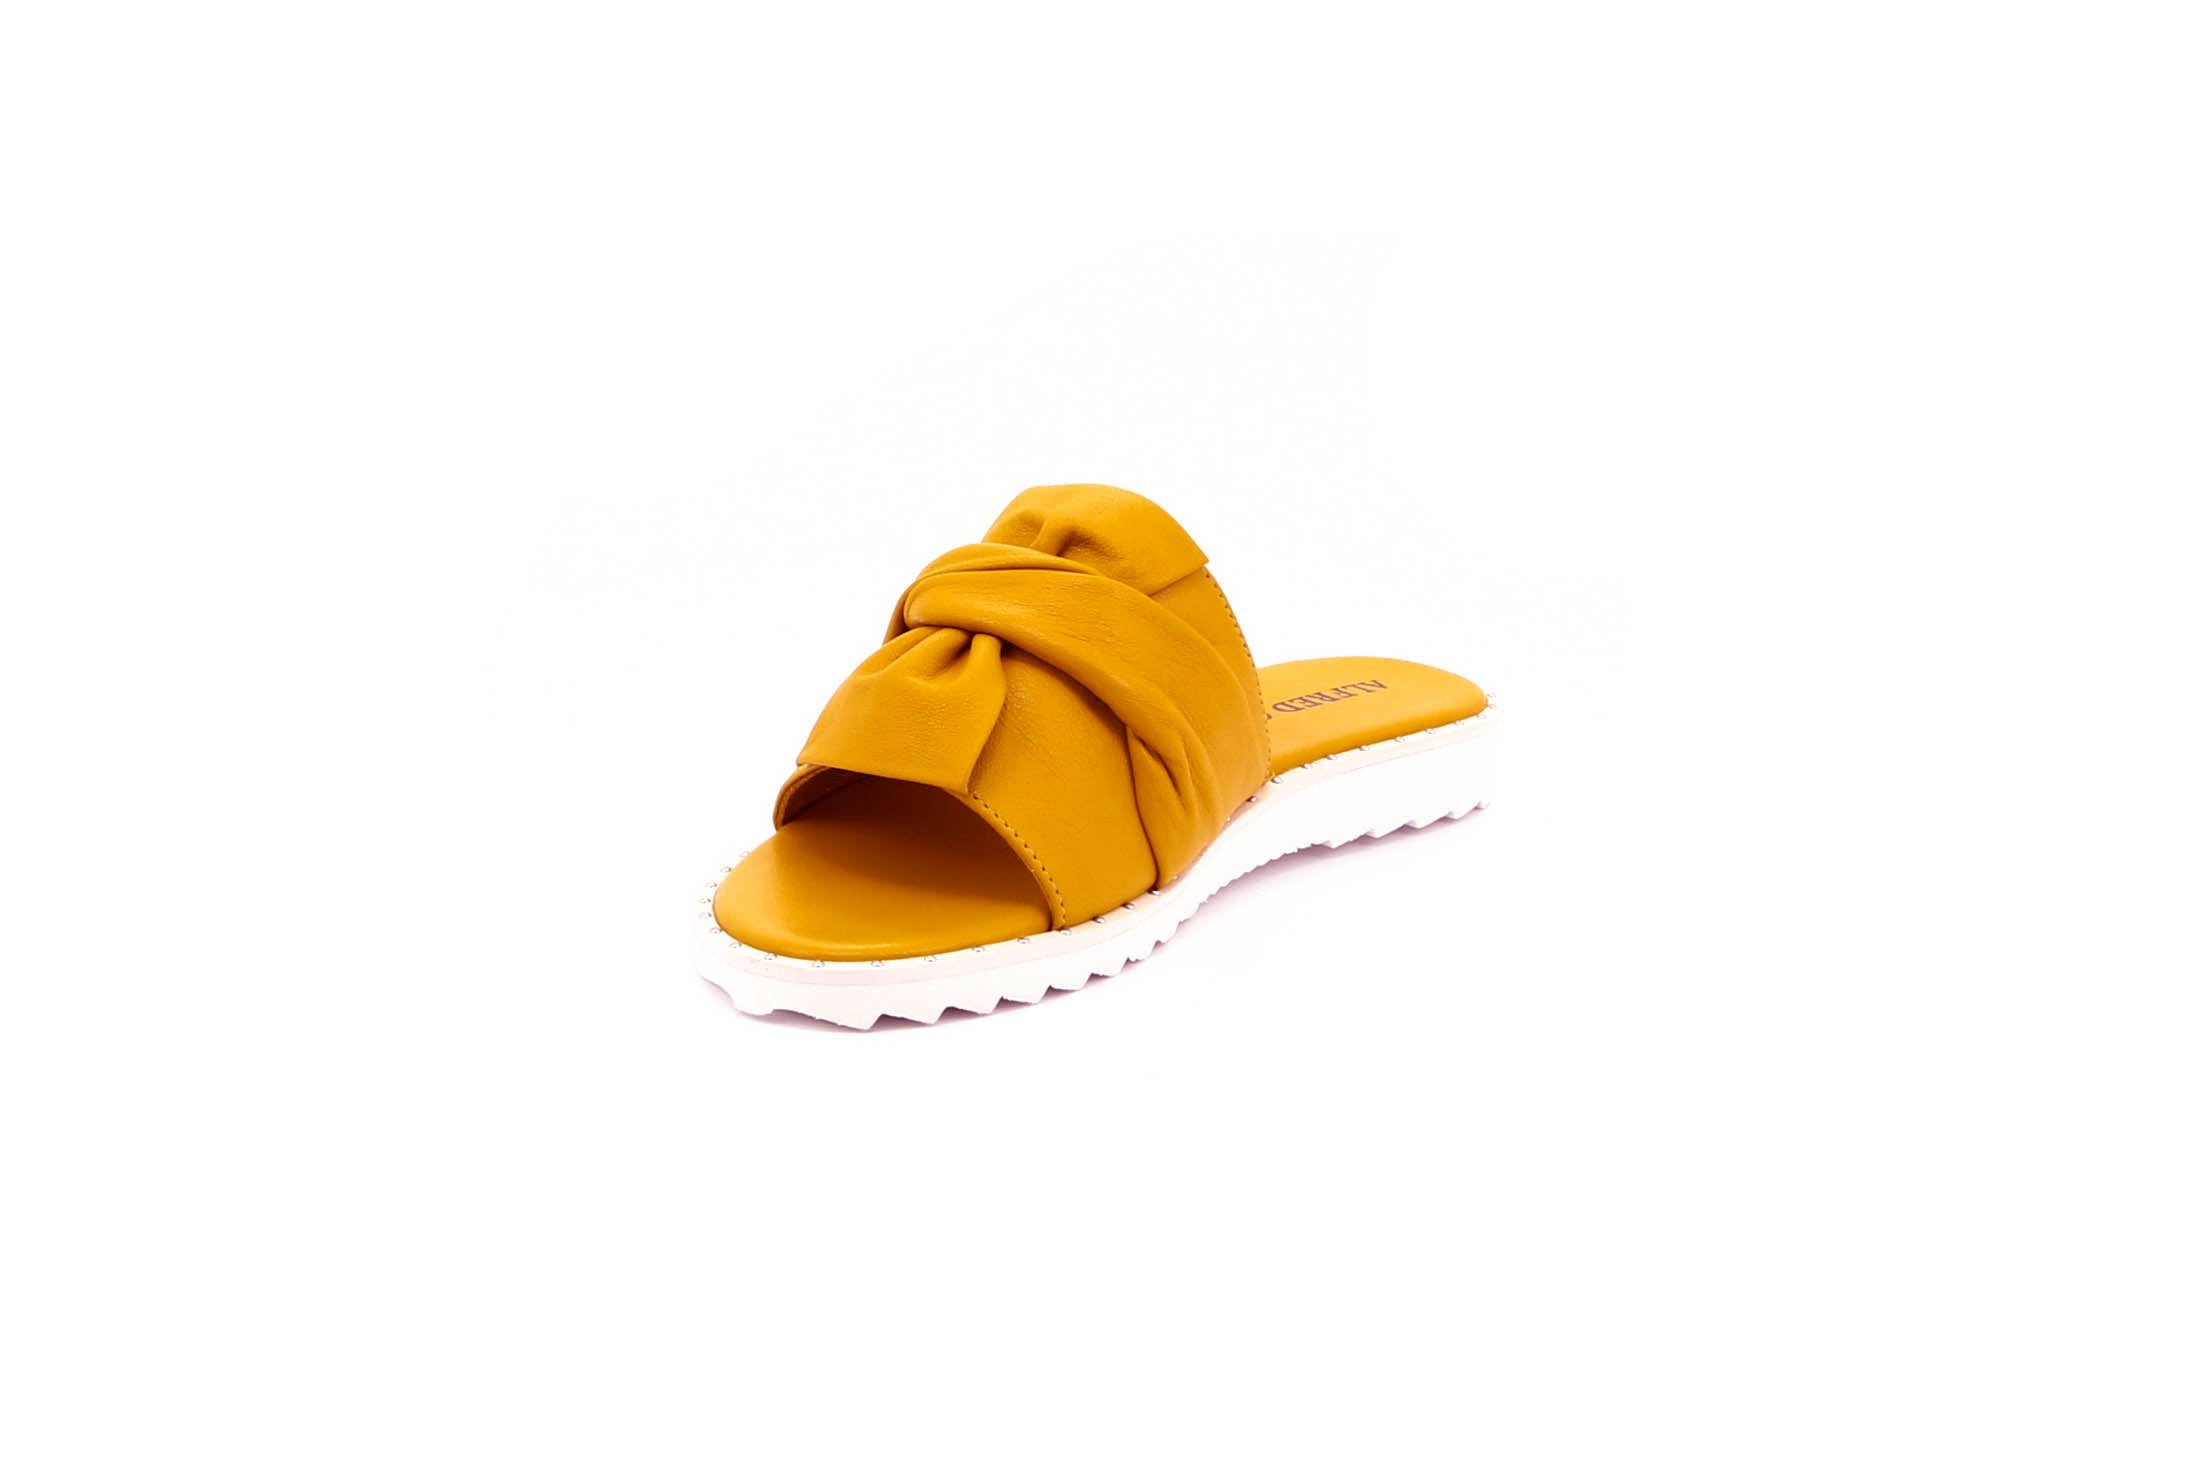 ALFRED C.® Olivia 6A23 Women's Sandals in Yellow Leather with EVA Soles - Alfred Cloutier Ltd. - Canada